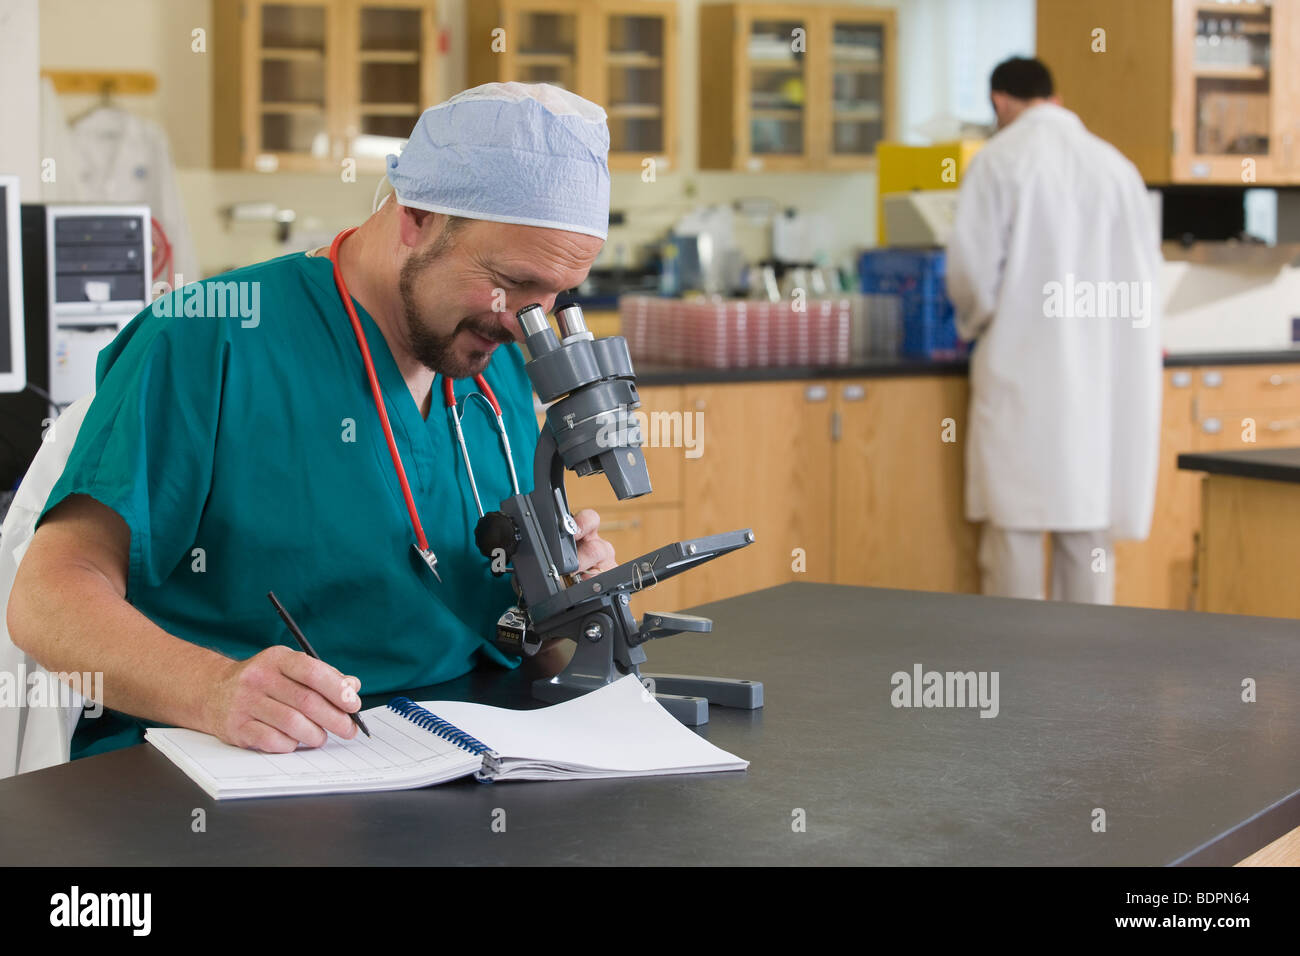 Scientist analyzing a sample through a microscope - Stock Image